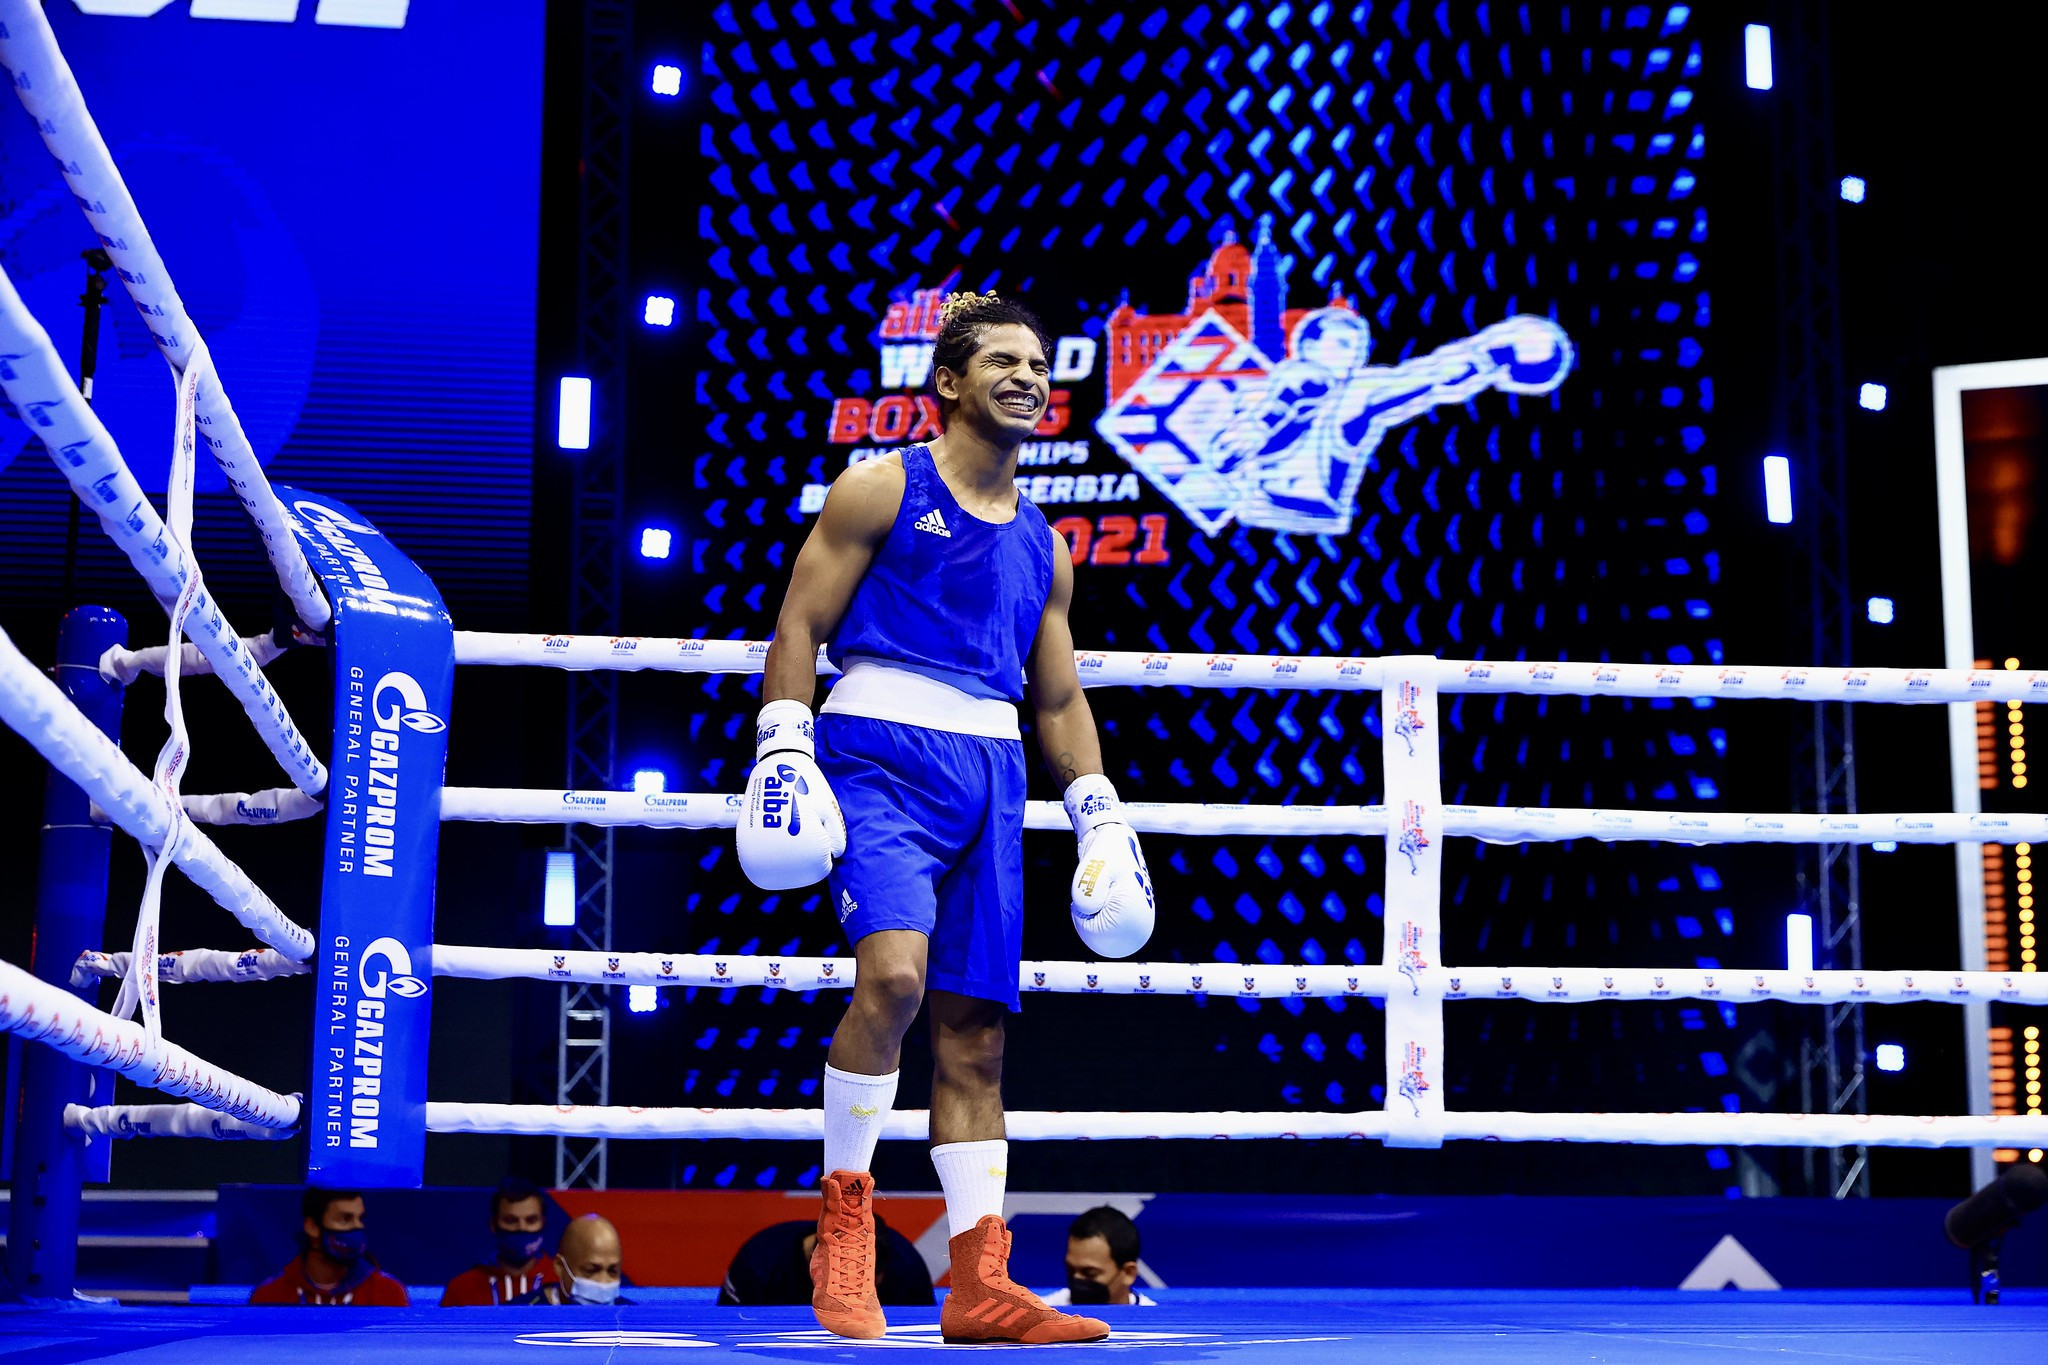 AIBA Men's World Boxing Championships: Day one of competition